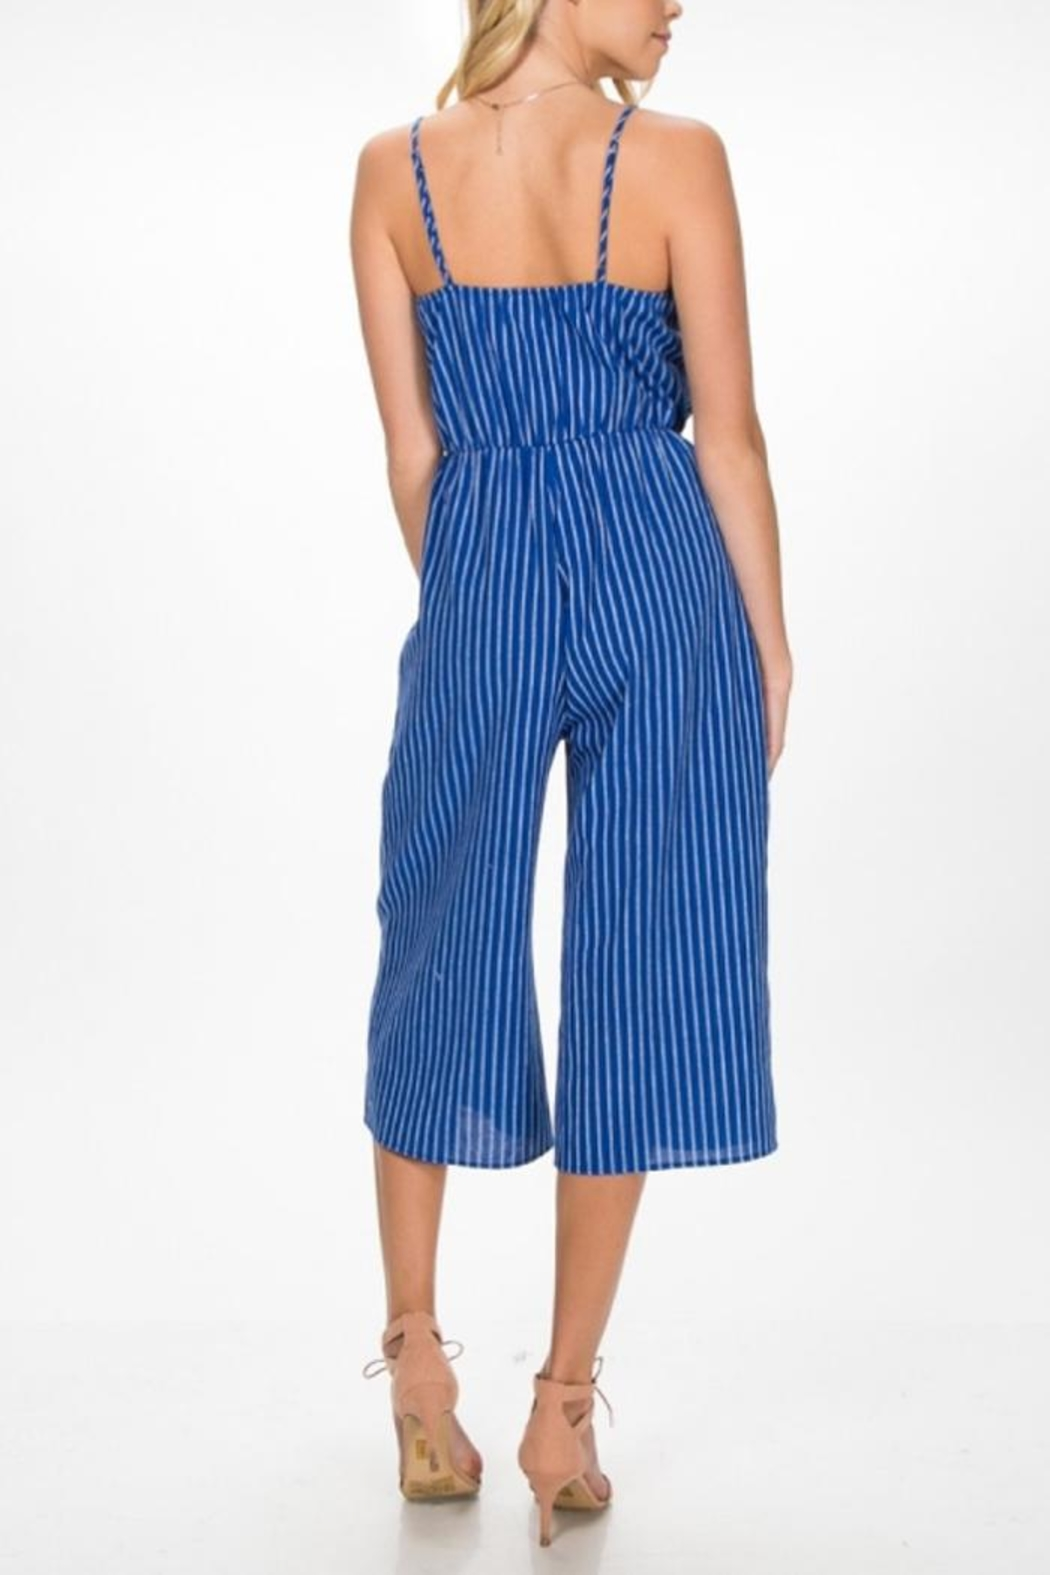 97f34c7acec Everly Blue Stripe Jumpsuit from New York City by Local Color NYC ...